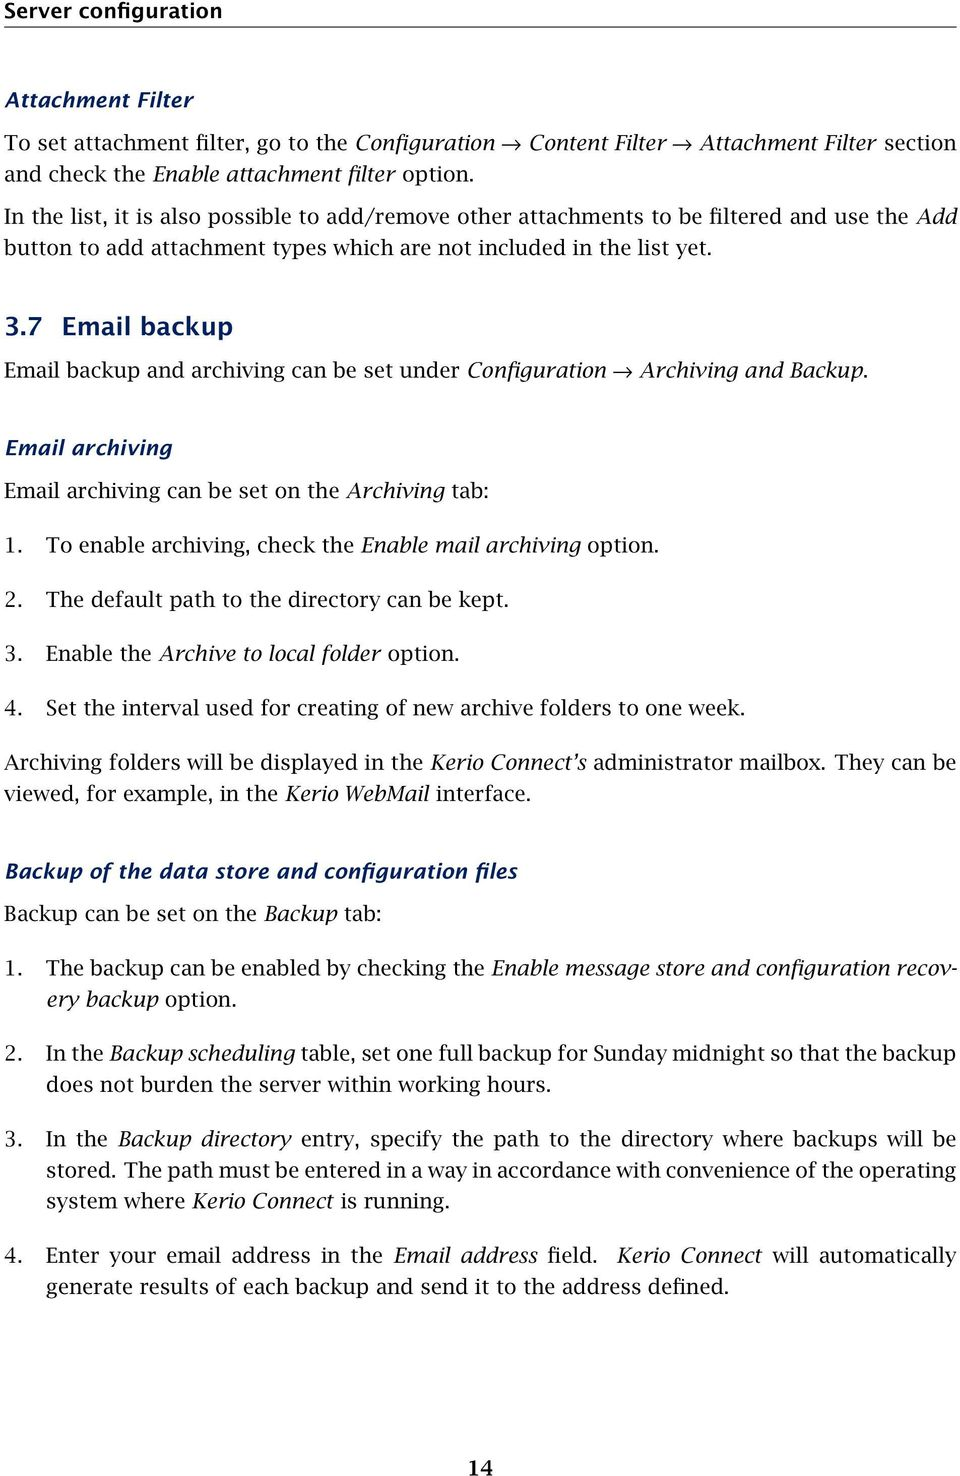 7 Email backup Email backup and archiving can be set under Configuration Archiving and Backup. Email archiving Email archiving can be set on the Archiving tab: 1.